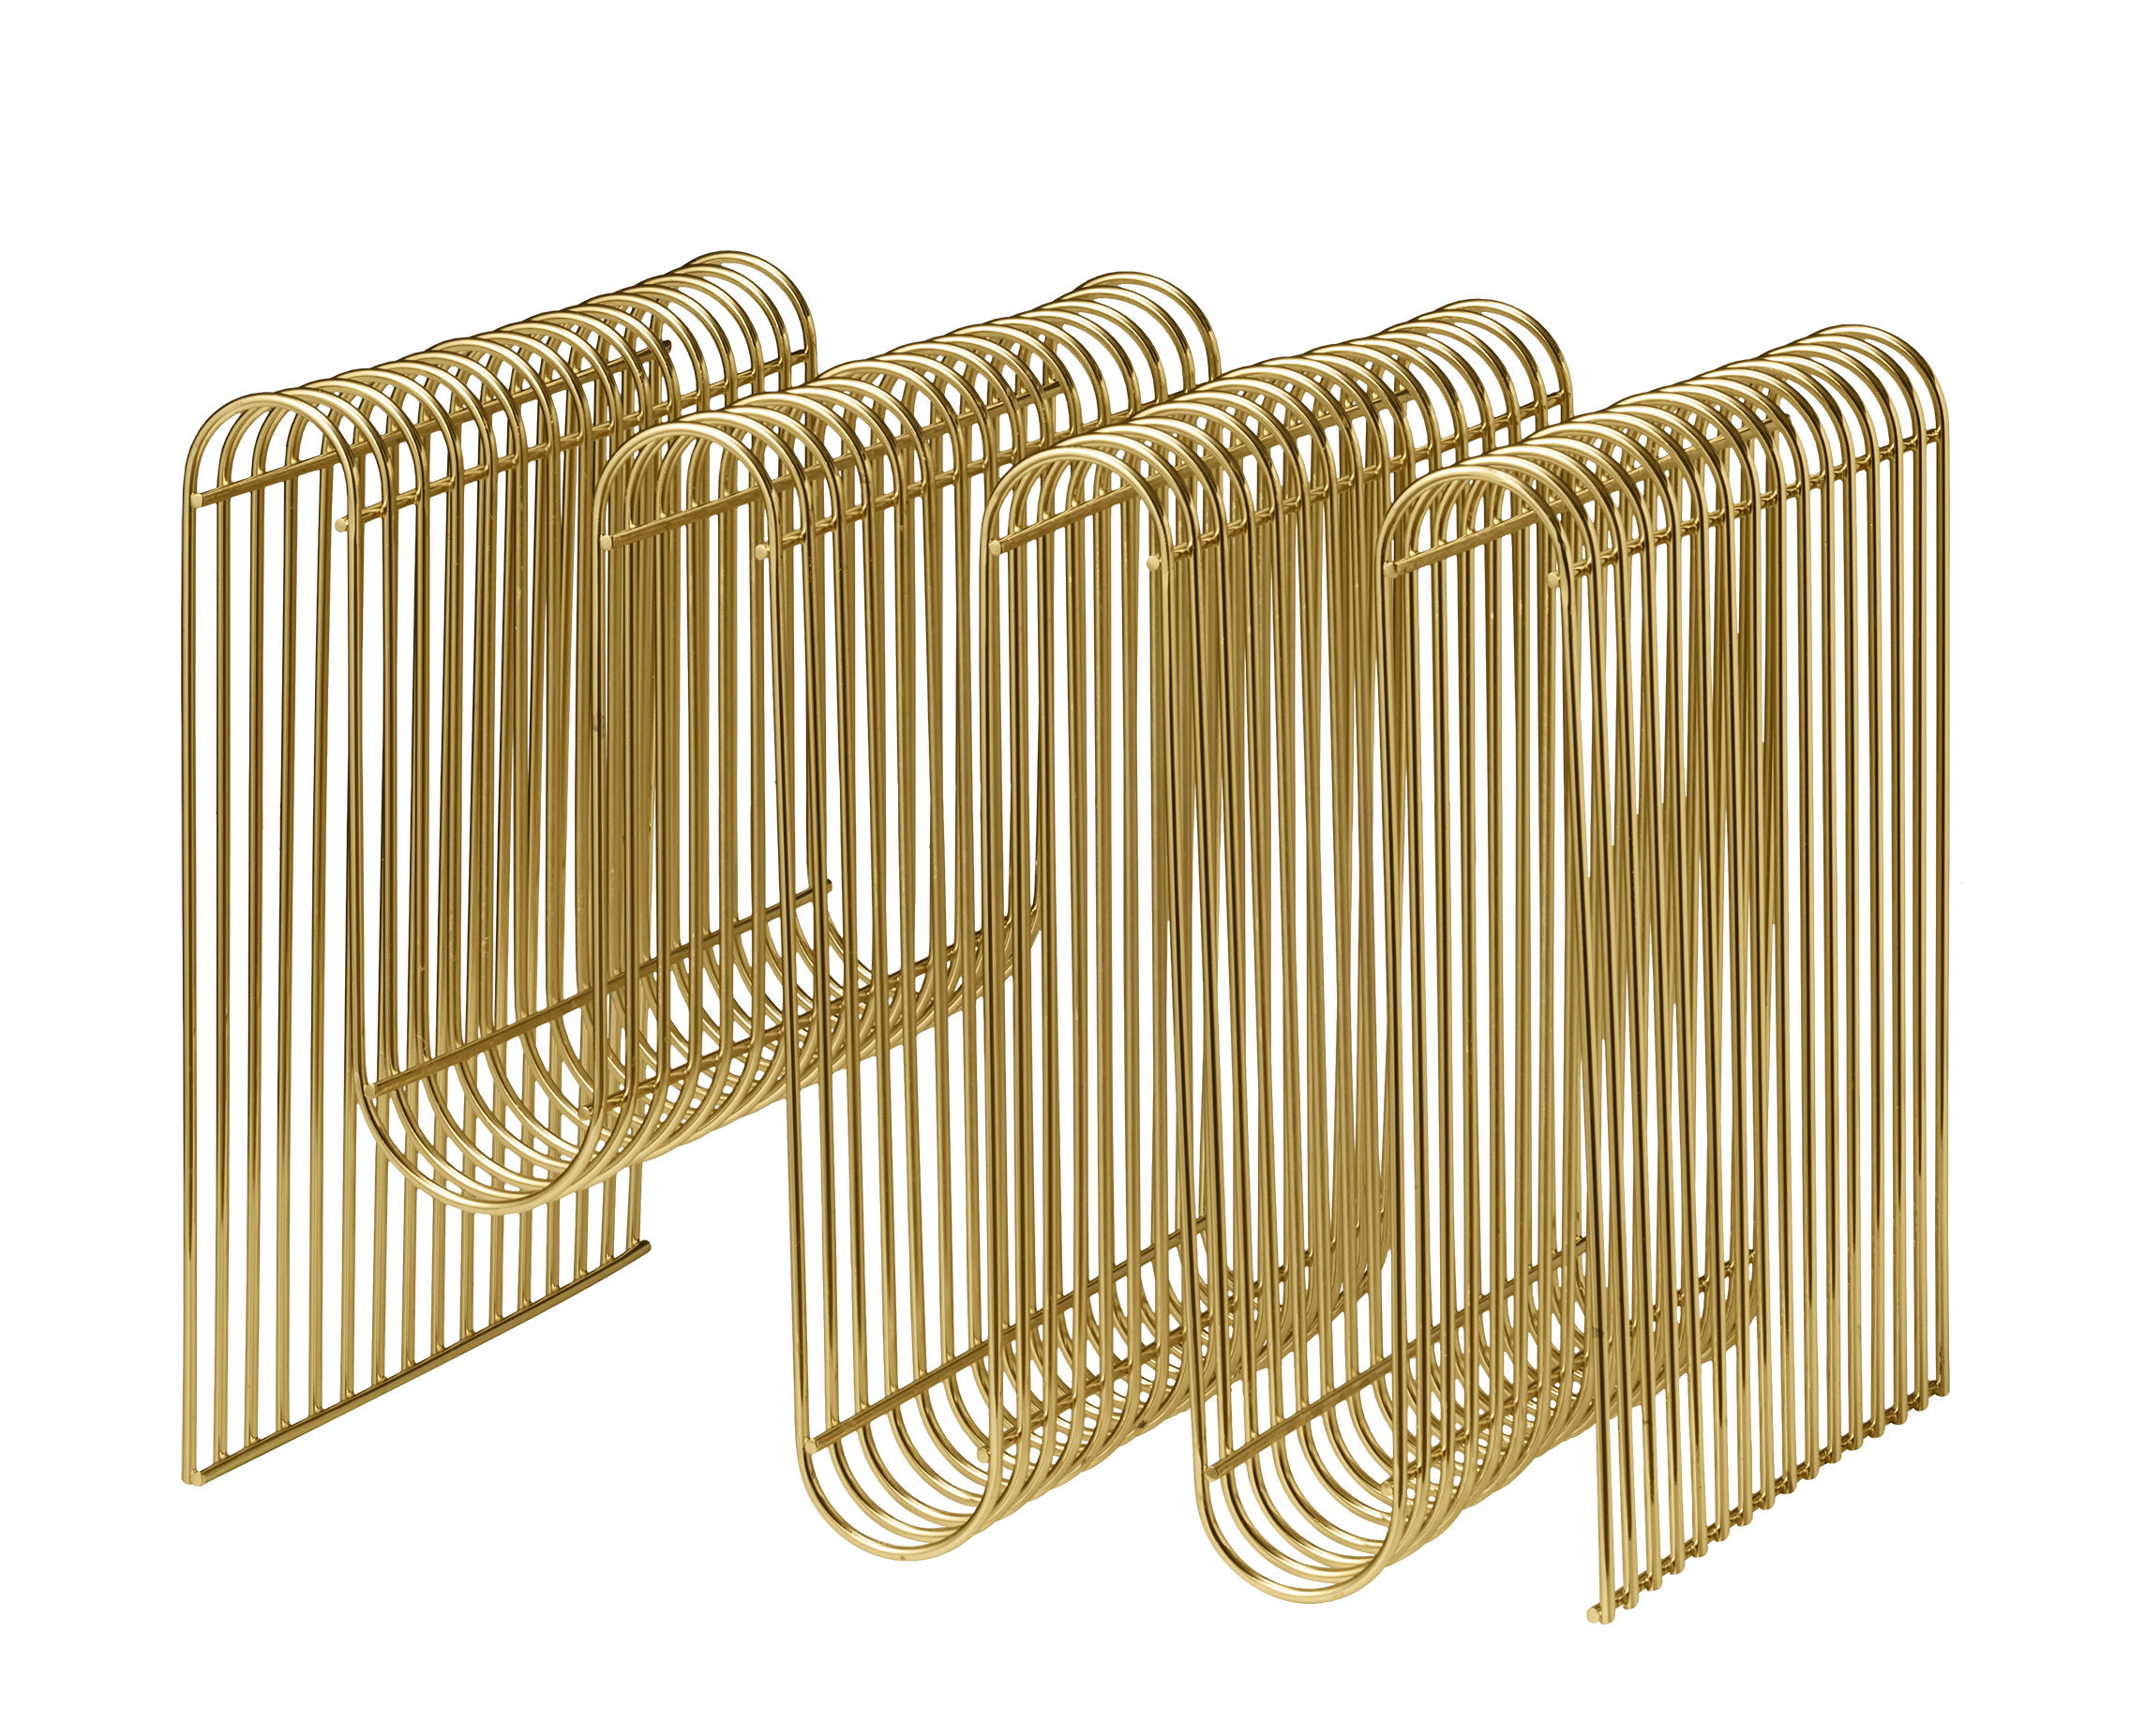 Decoration - Boxes & Baskets - Curva Magazine holder - L 40 x H 30 cm by AYTM - Brass - Brass plated iron